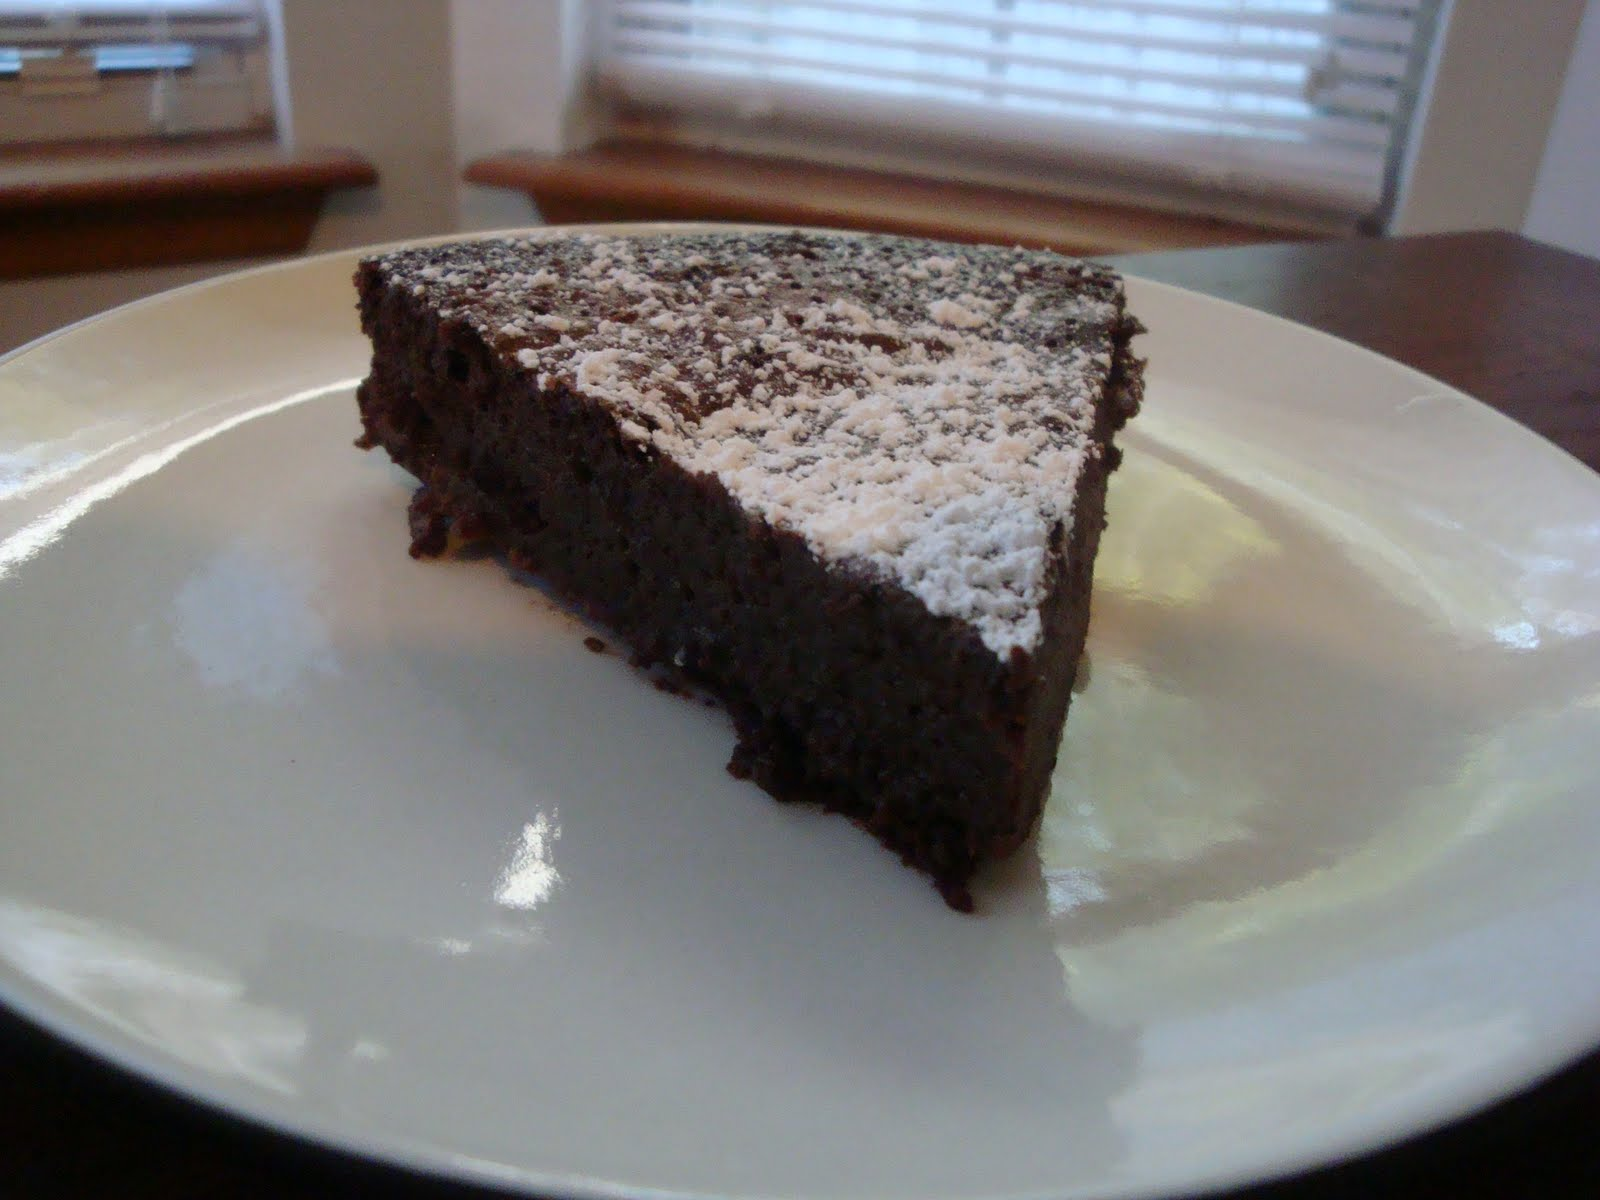 Siestas and Cupcakes: Chocolate Mousse Cake